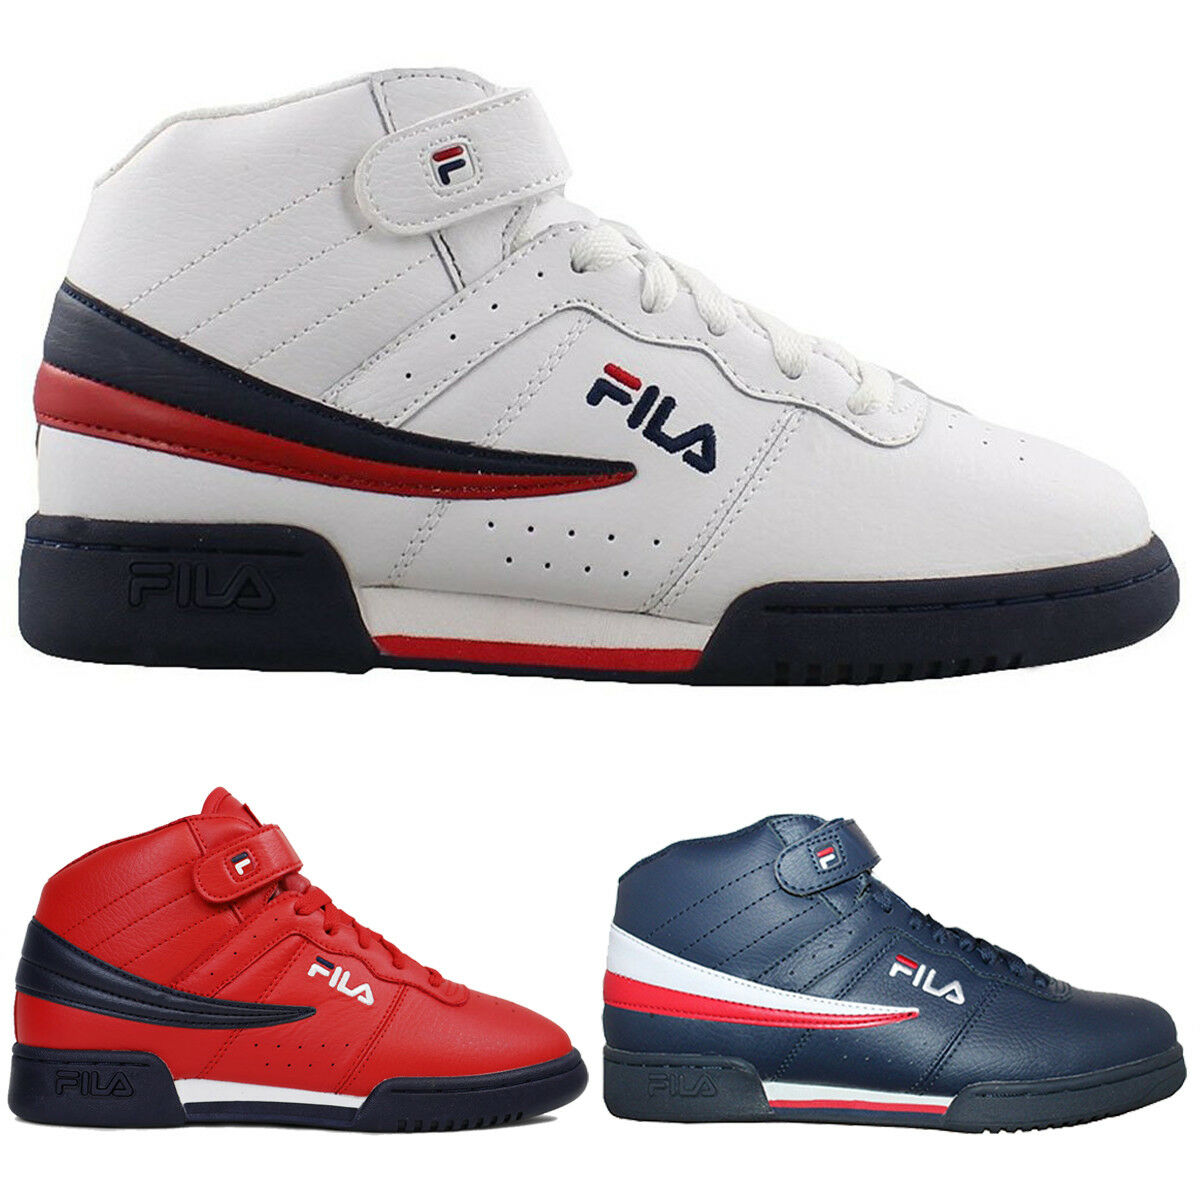 3576453752 Mens Fila F13 F-13 Classic Mid High Top Basketball shoes NAVY RED 1VF059LX